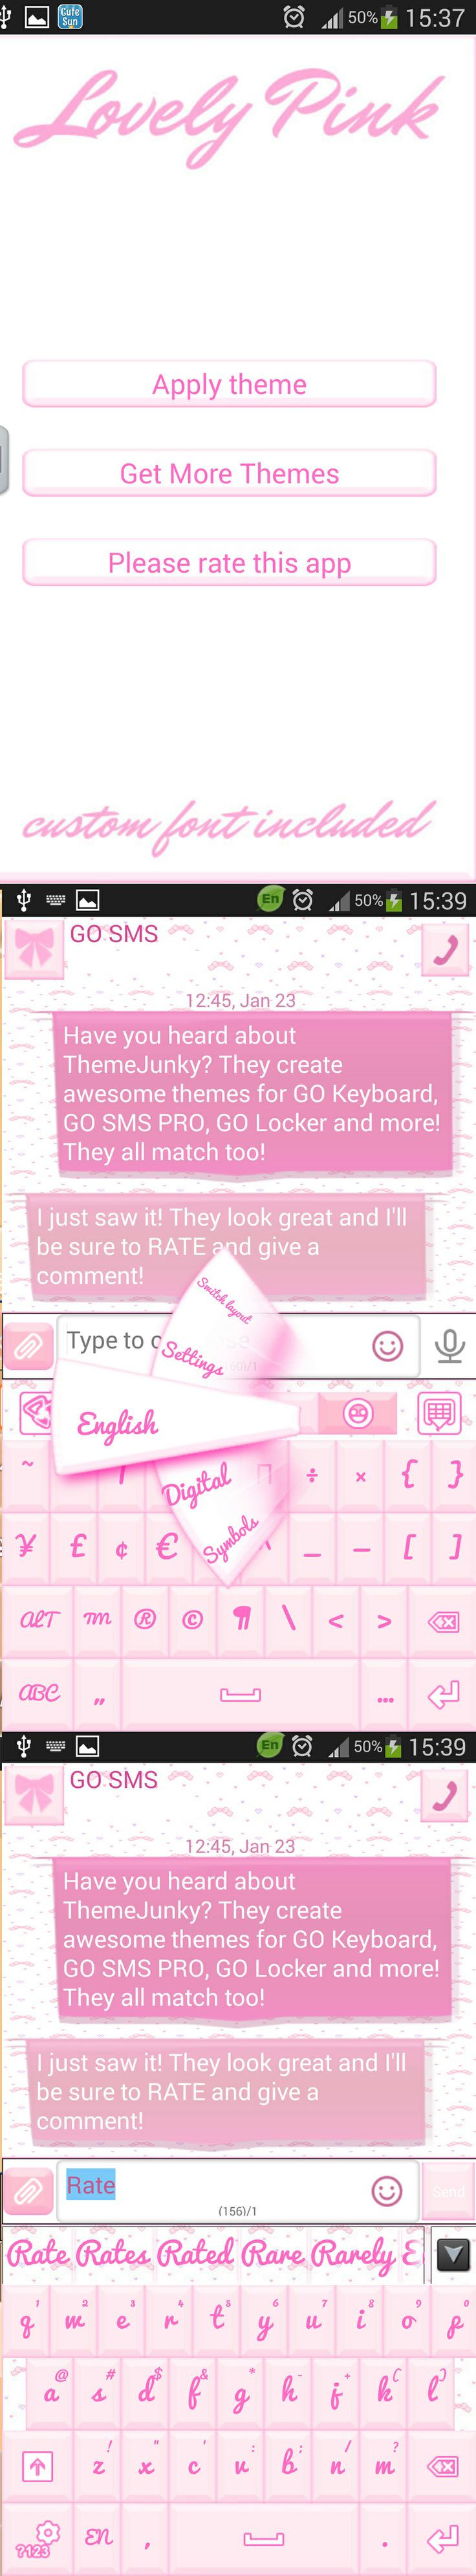 Themes in google play - Lovely Pink Go Keyboard Theme Search Themejunky On Google Play To Discover